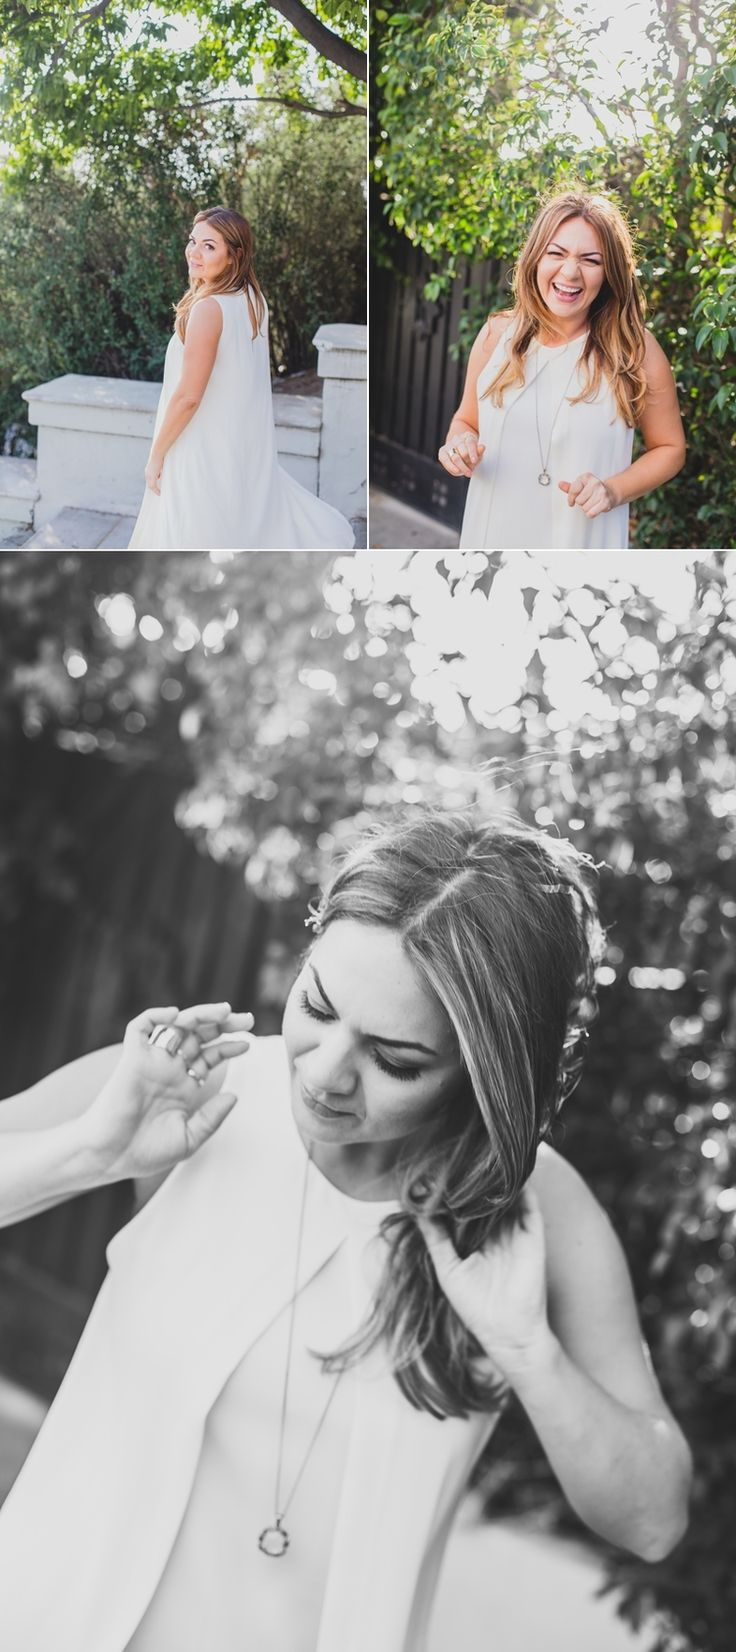 Blog :: Kimberly Daniels Photography — Kimberly Daniels Photography